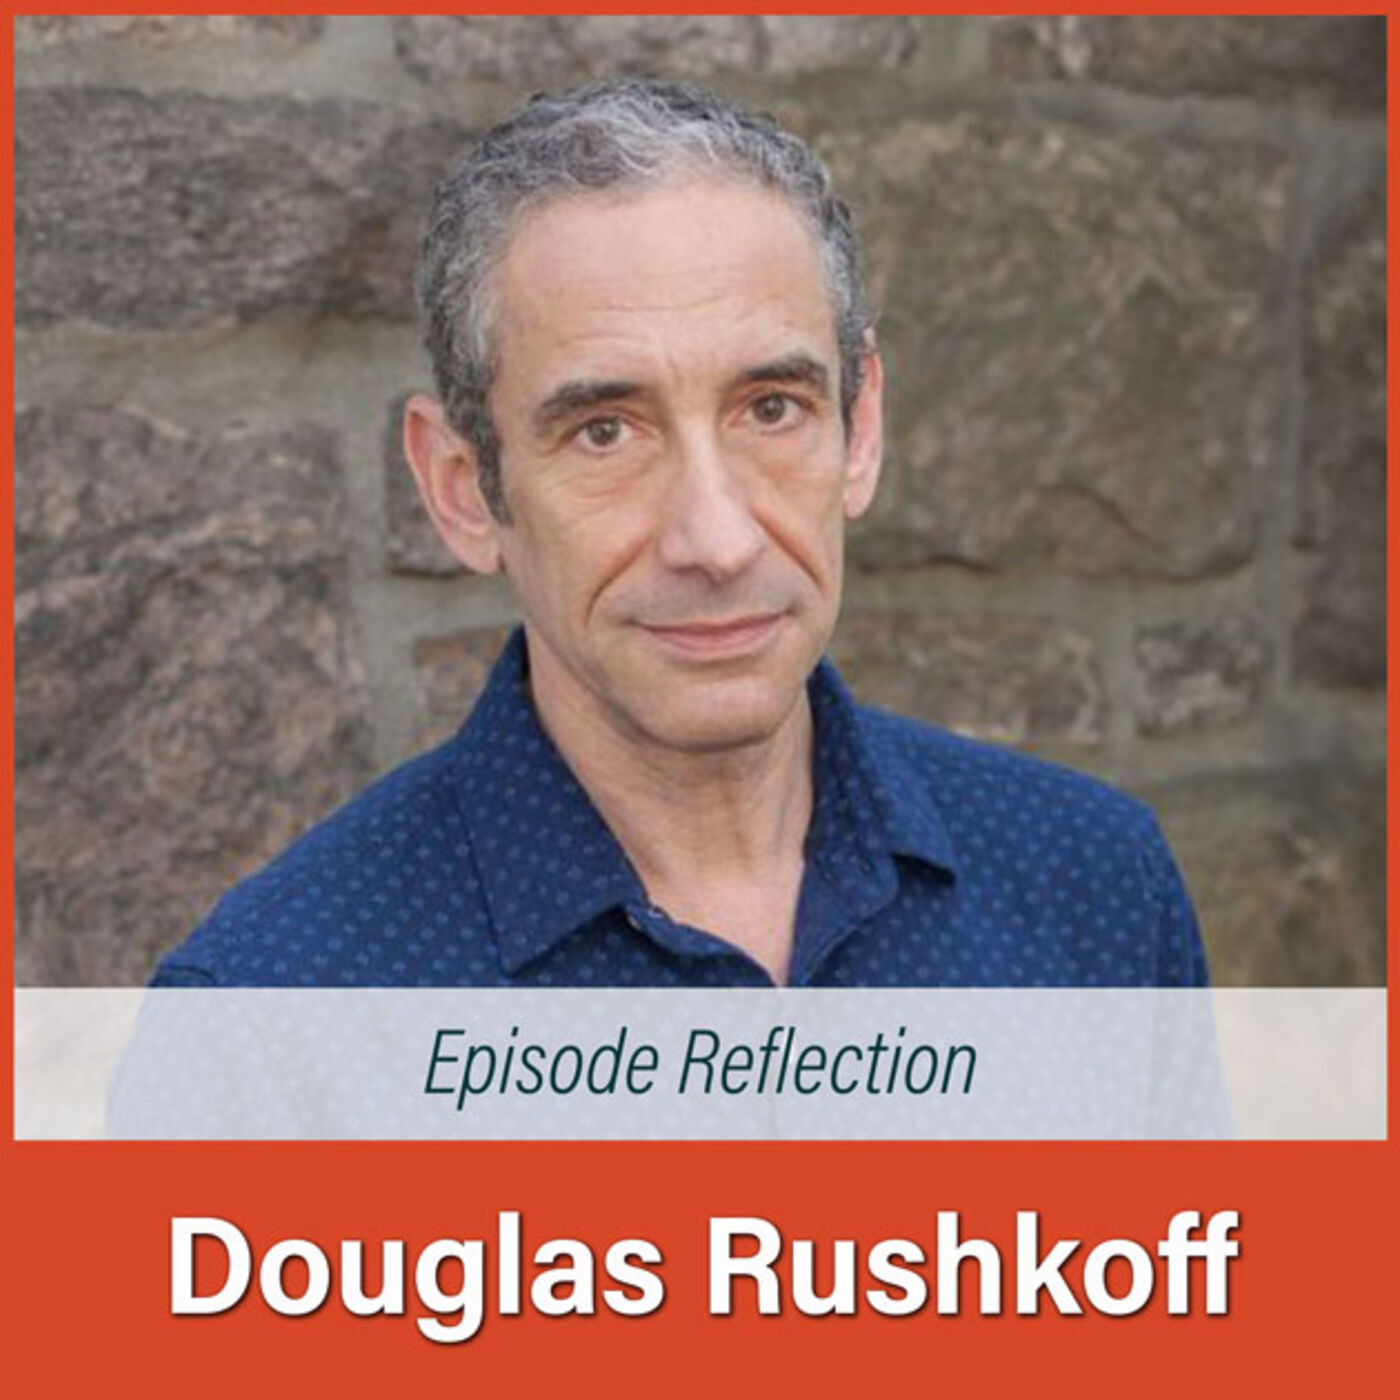 #28R Douglas Rushkoff Reflection: Social Affection is the Gold